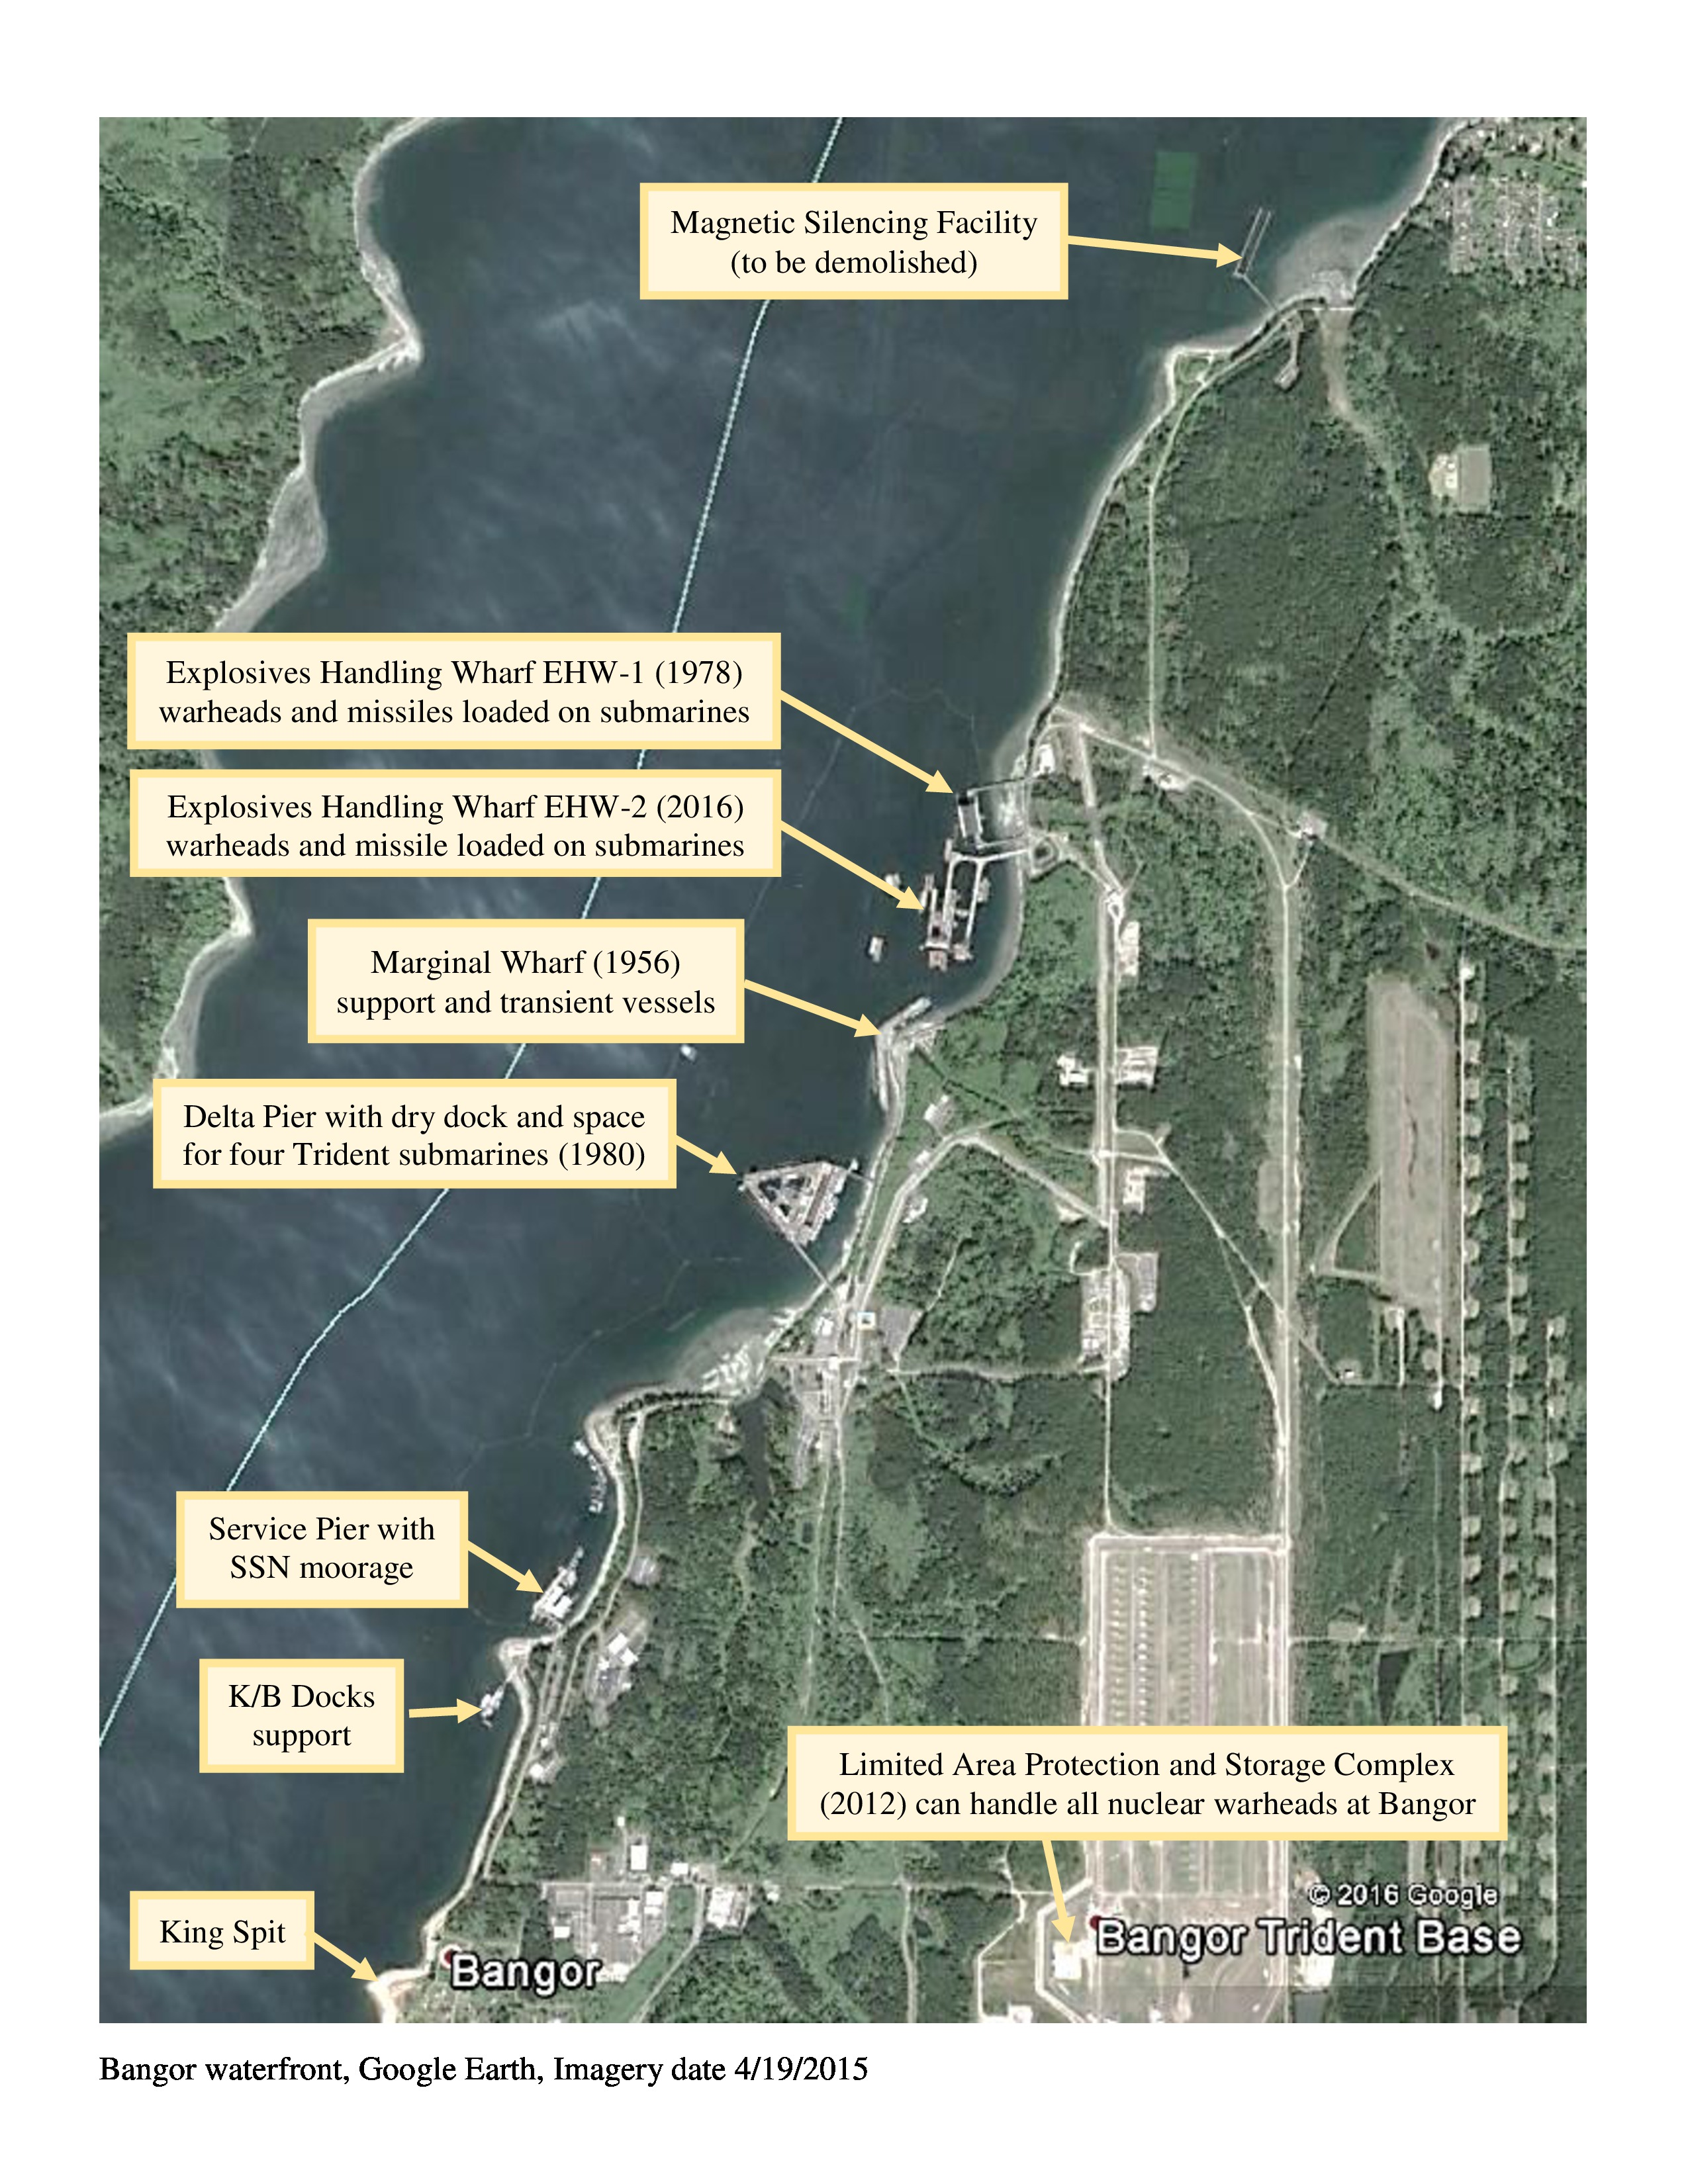 Bangor waterfront map-page-0  sc 1 st  Ground Zero Center for Nonviolent Action & Leonard Eiger \u2013 Page 10 \u2013 Ground Zero Center for Nonviolent Action